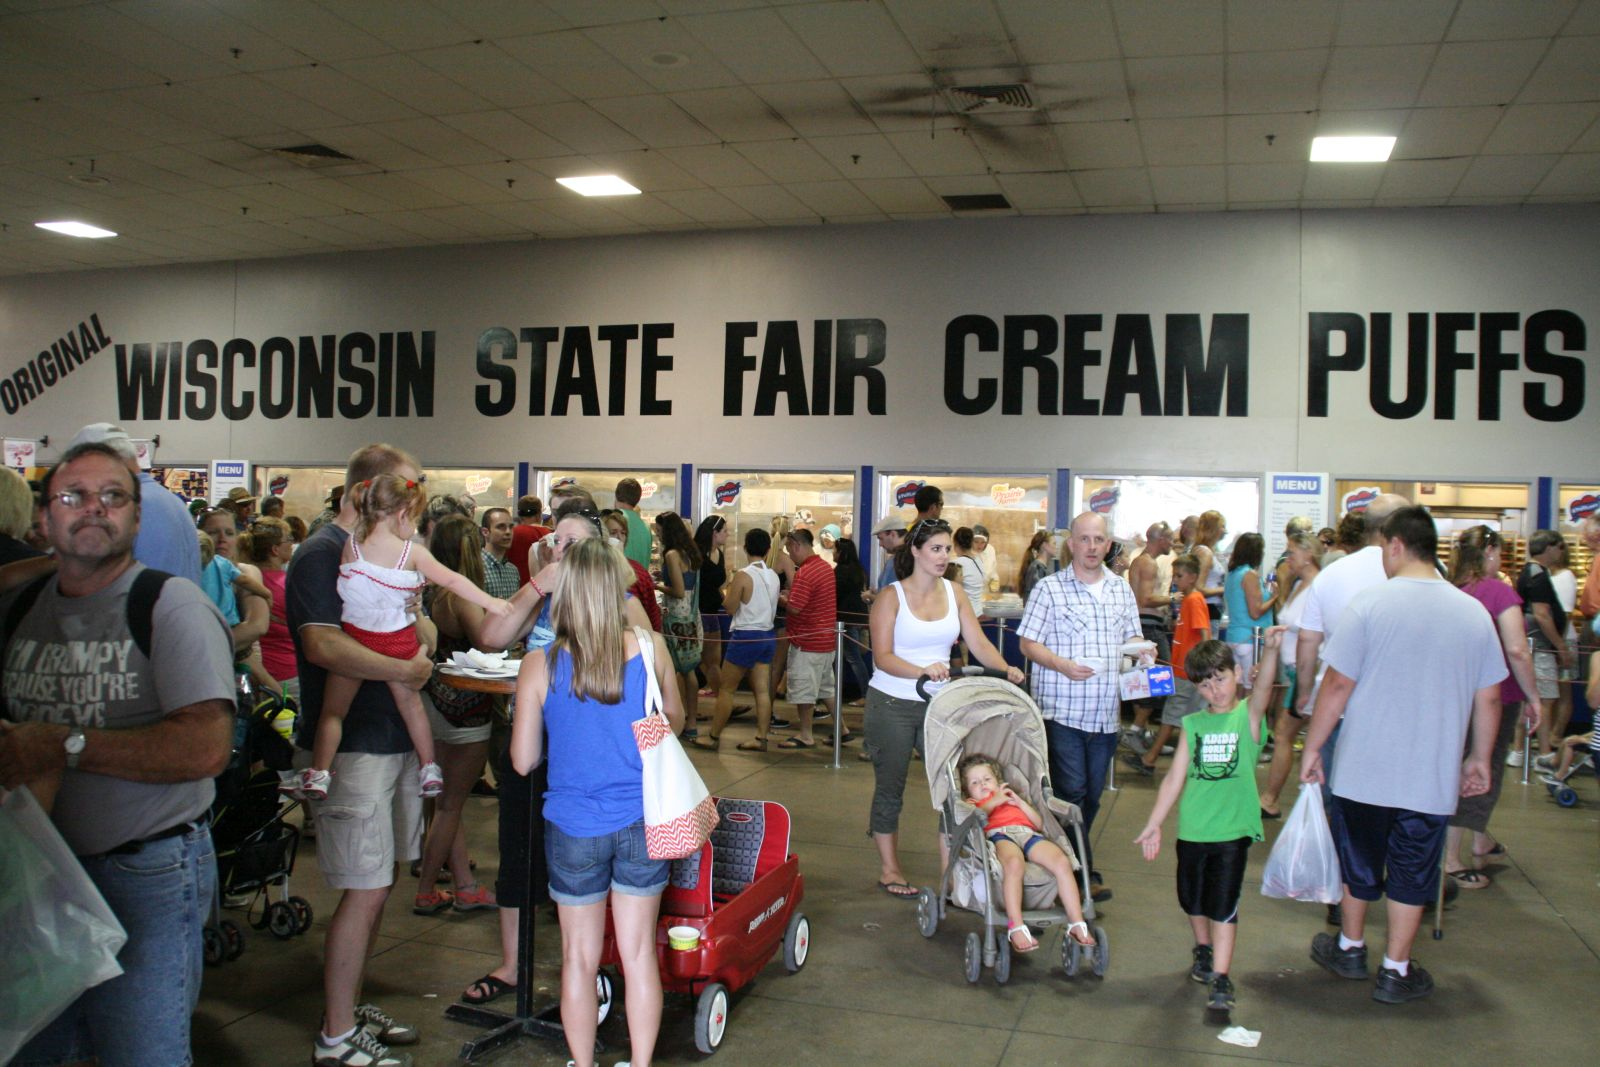 The cream puffs draw a large crowd at the 2014 Wisconsin State Fair. Photo by Jeramey Jannene.